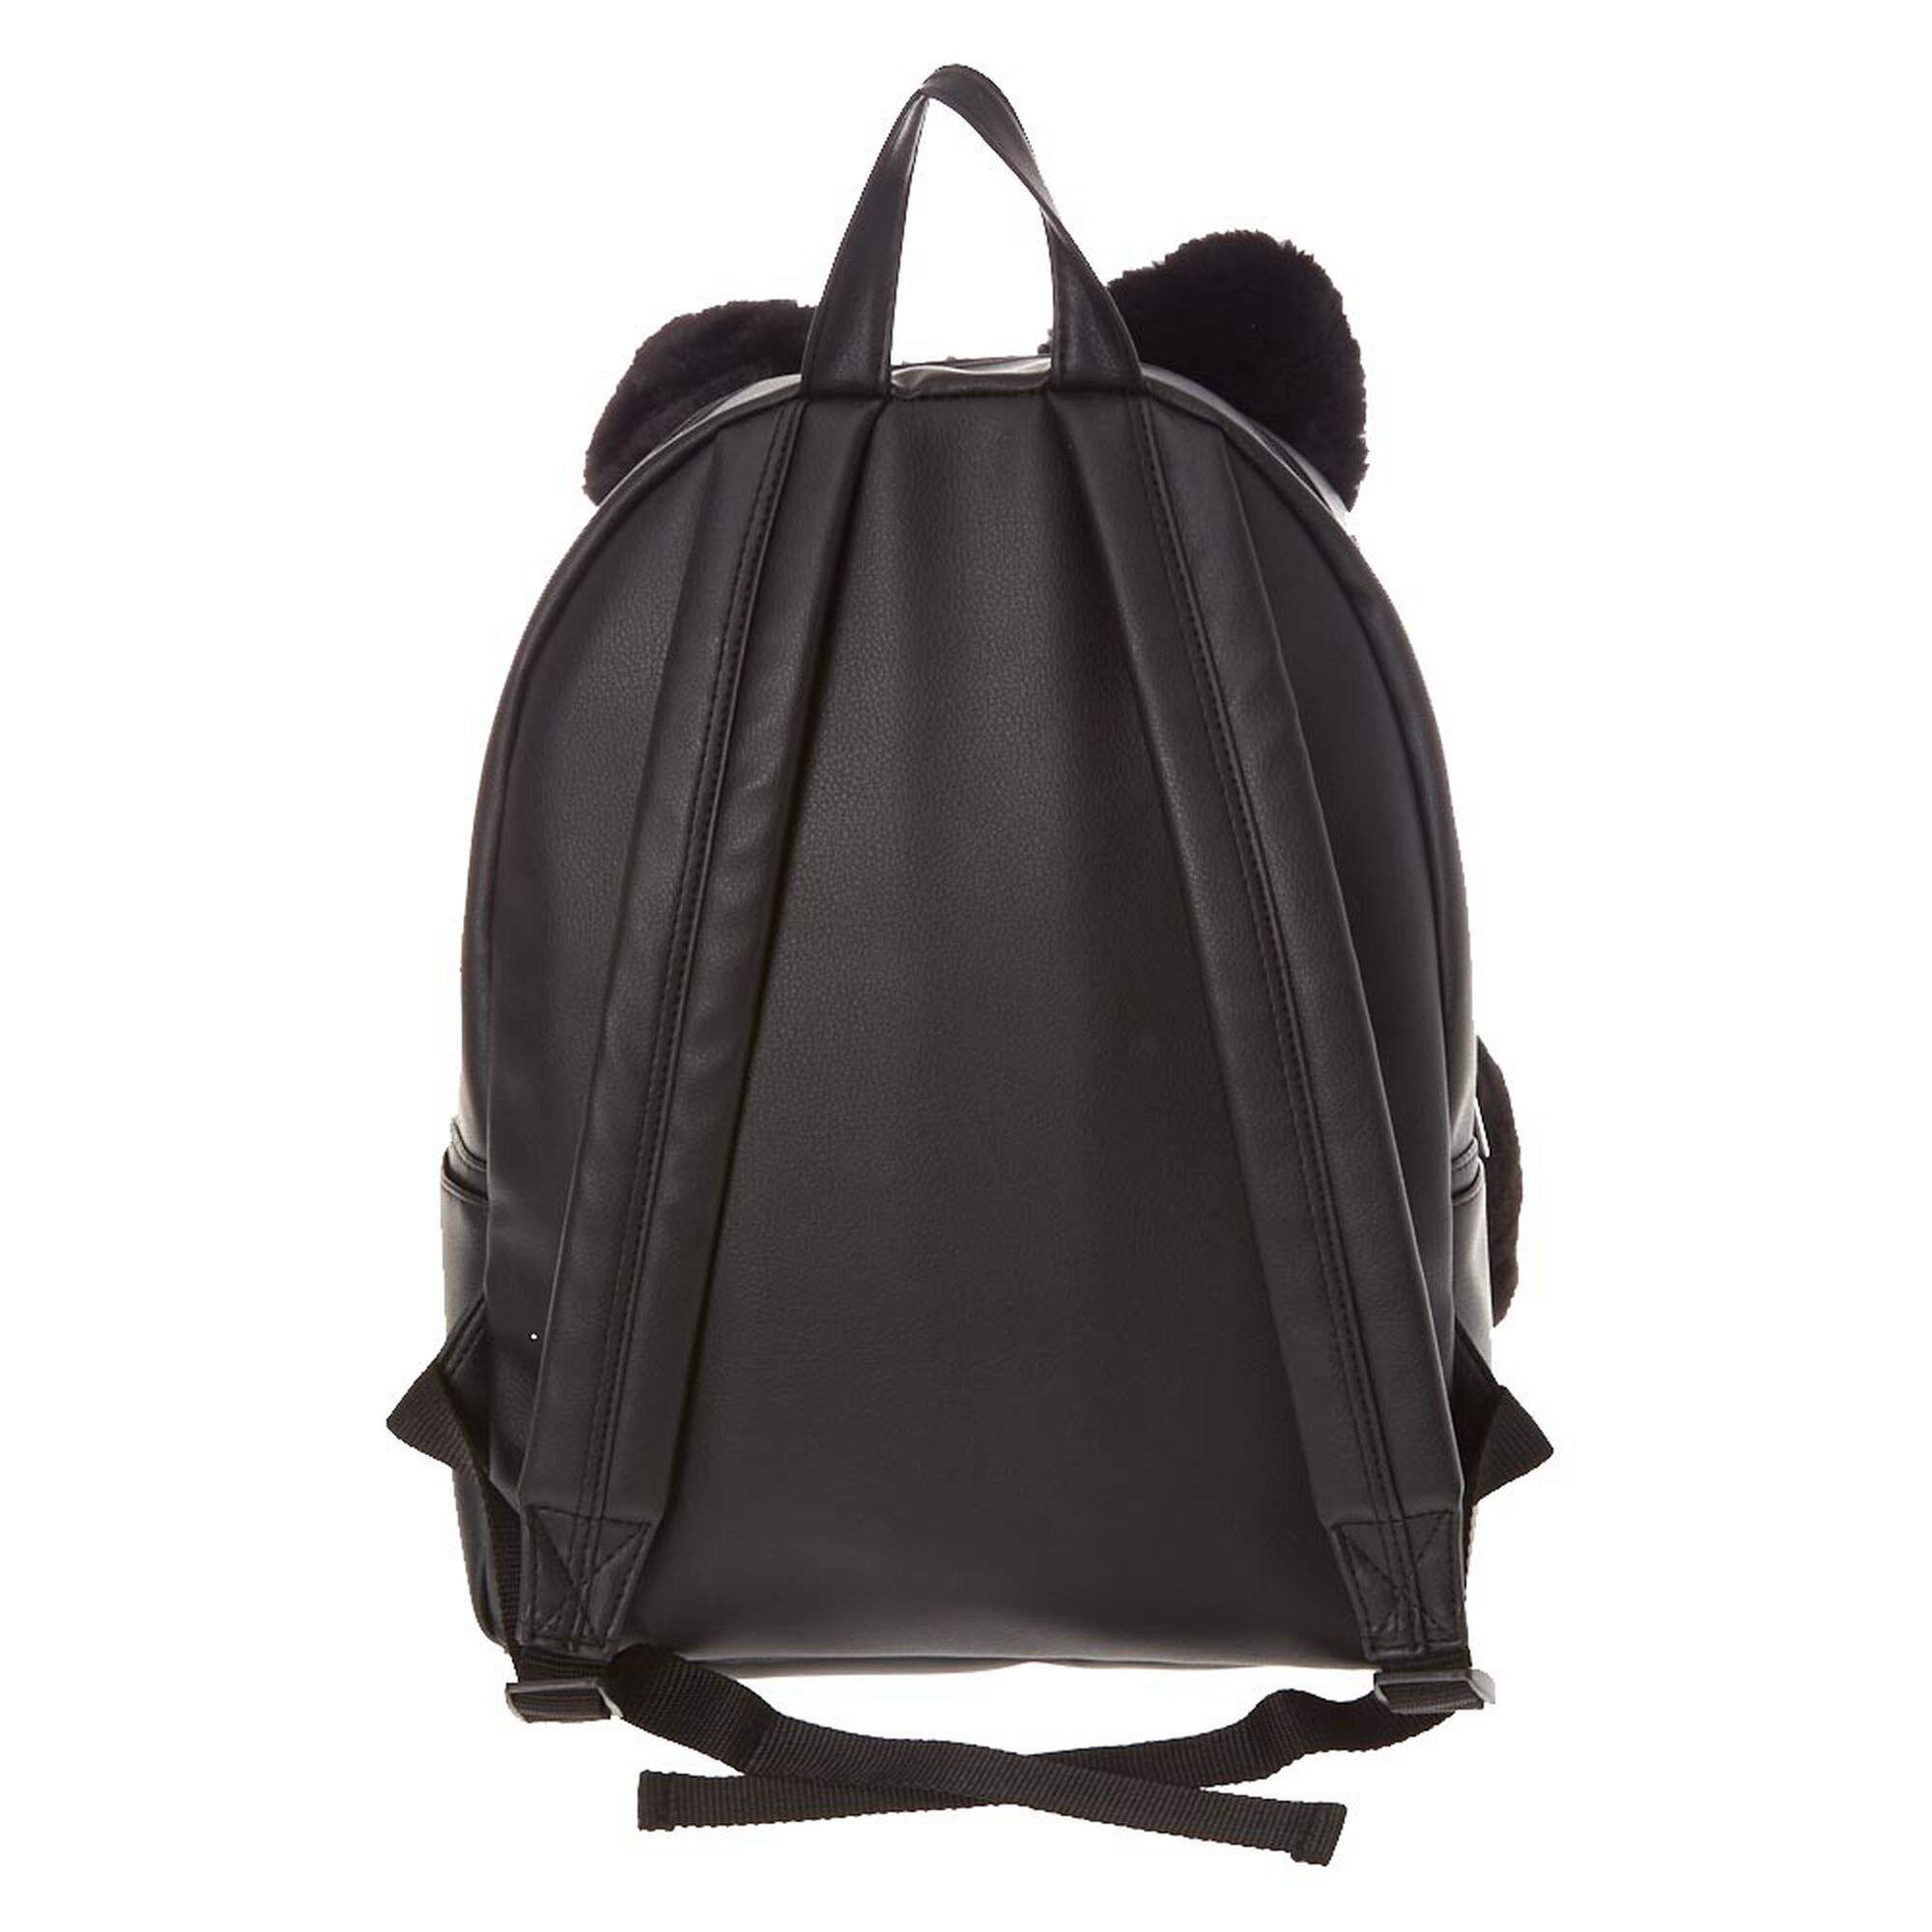 ef11e886a12beb Furry Black Cat Backpack | Claire's US